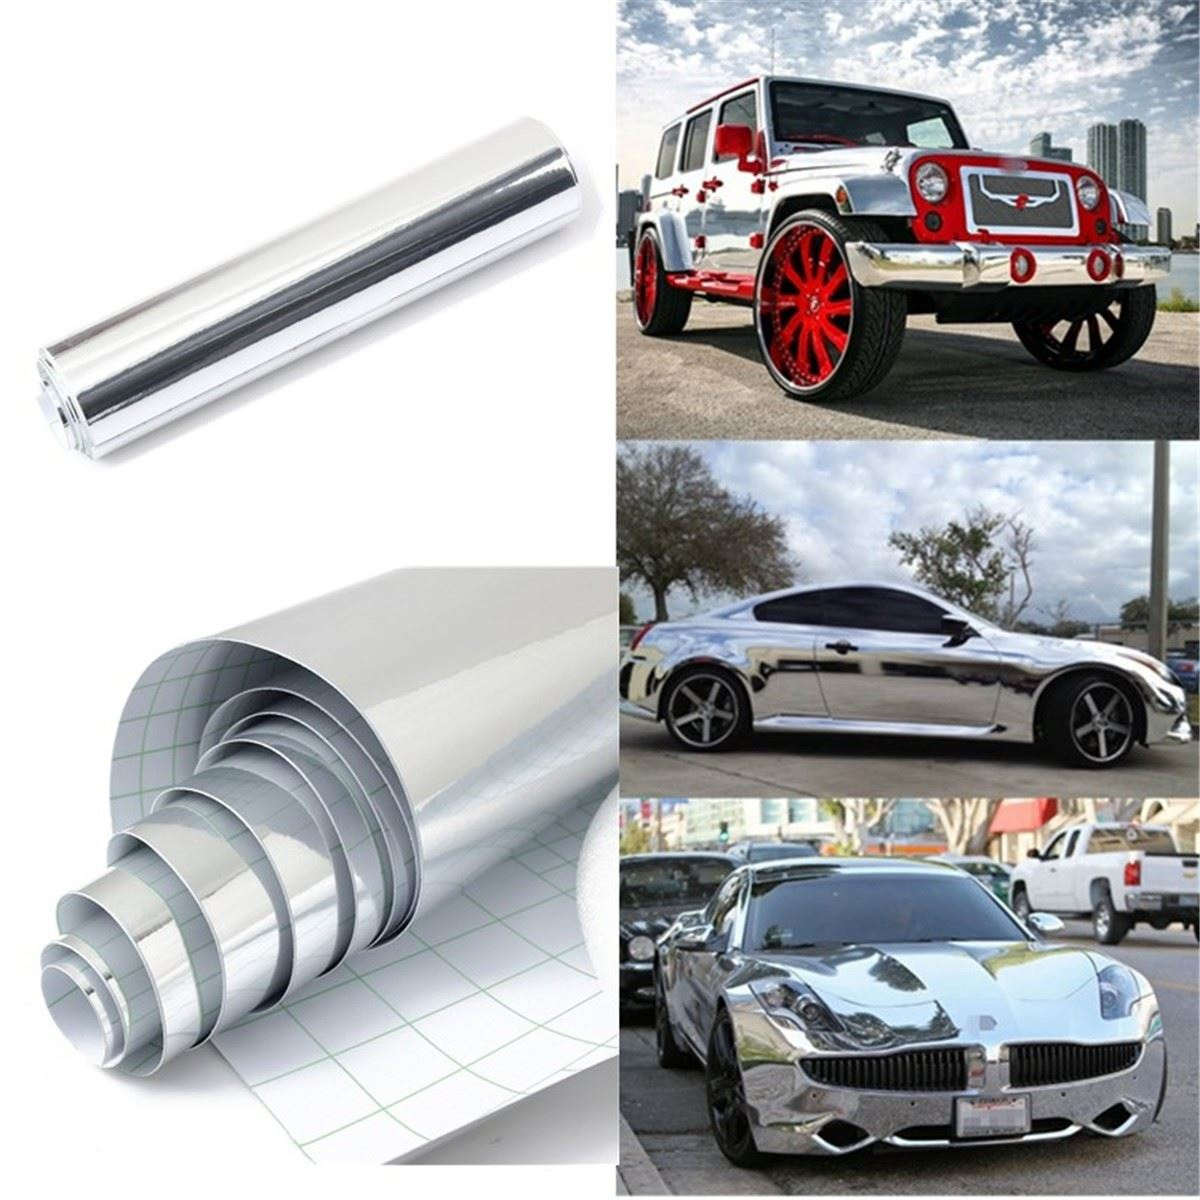 152 x 20cm Silver Chrome Waterproof UV Protected Auto Mirror Vinyl Wrap Film Car Sticker Decal Sheet 8x60 inch наматрасники candide наматрасник водонепроницаемый waterproof fitted sheet 60x120 см